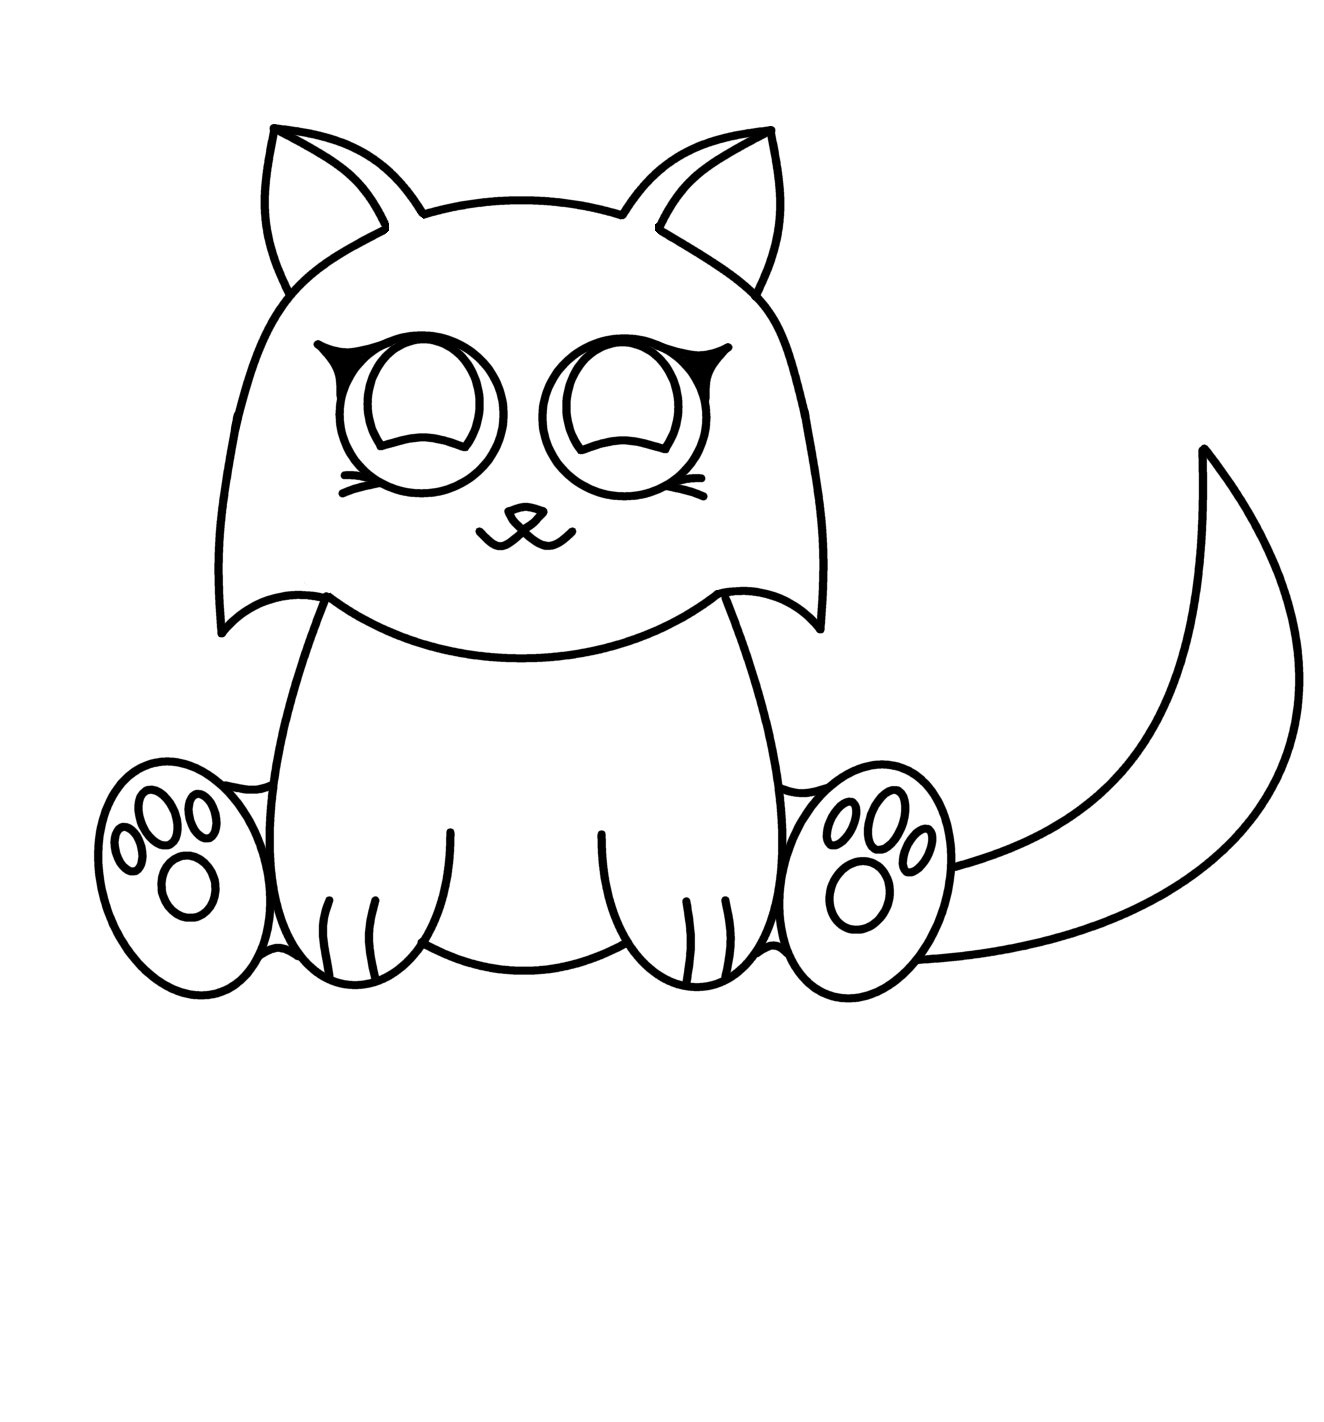 how to draw anime cats how to draw anime cat google search warrior cats fan how anime draw to cats